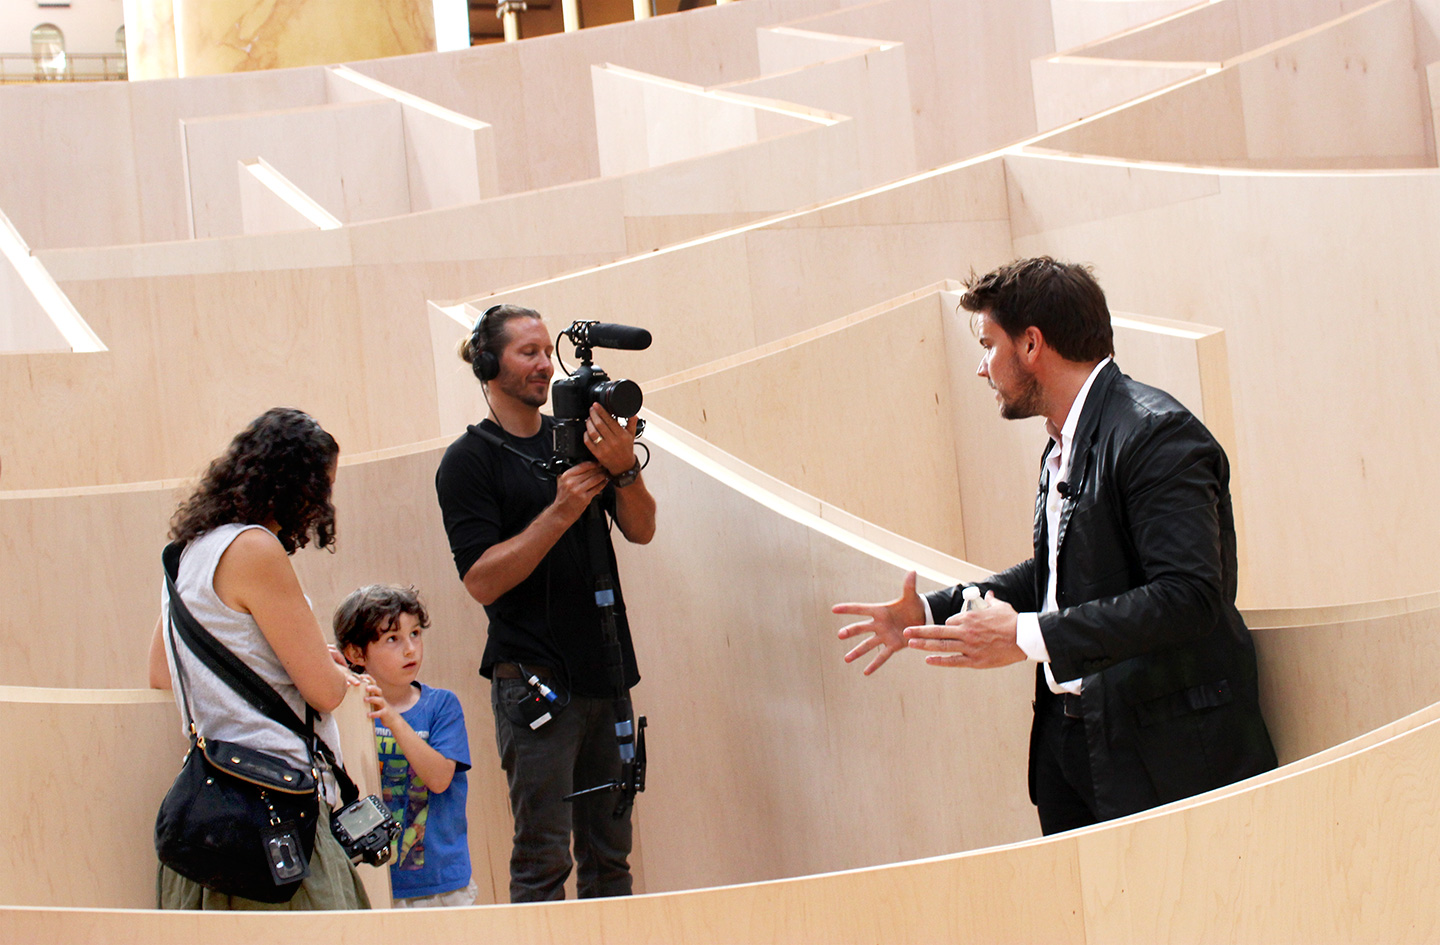 Bjarke Ingels gives a young visitor a simple explanation of how the maze was built.